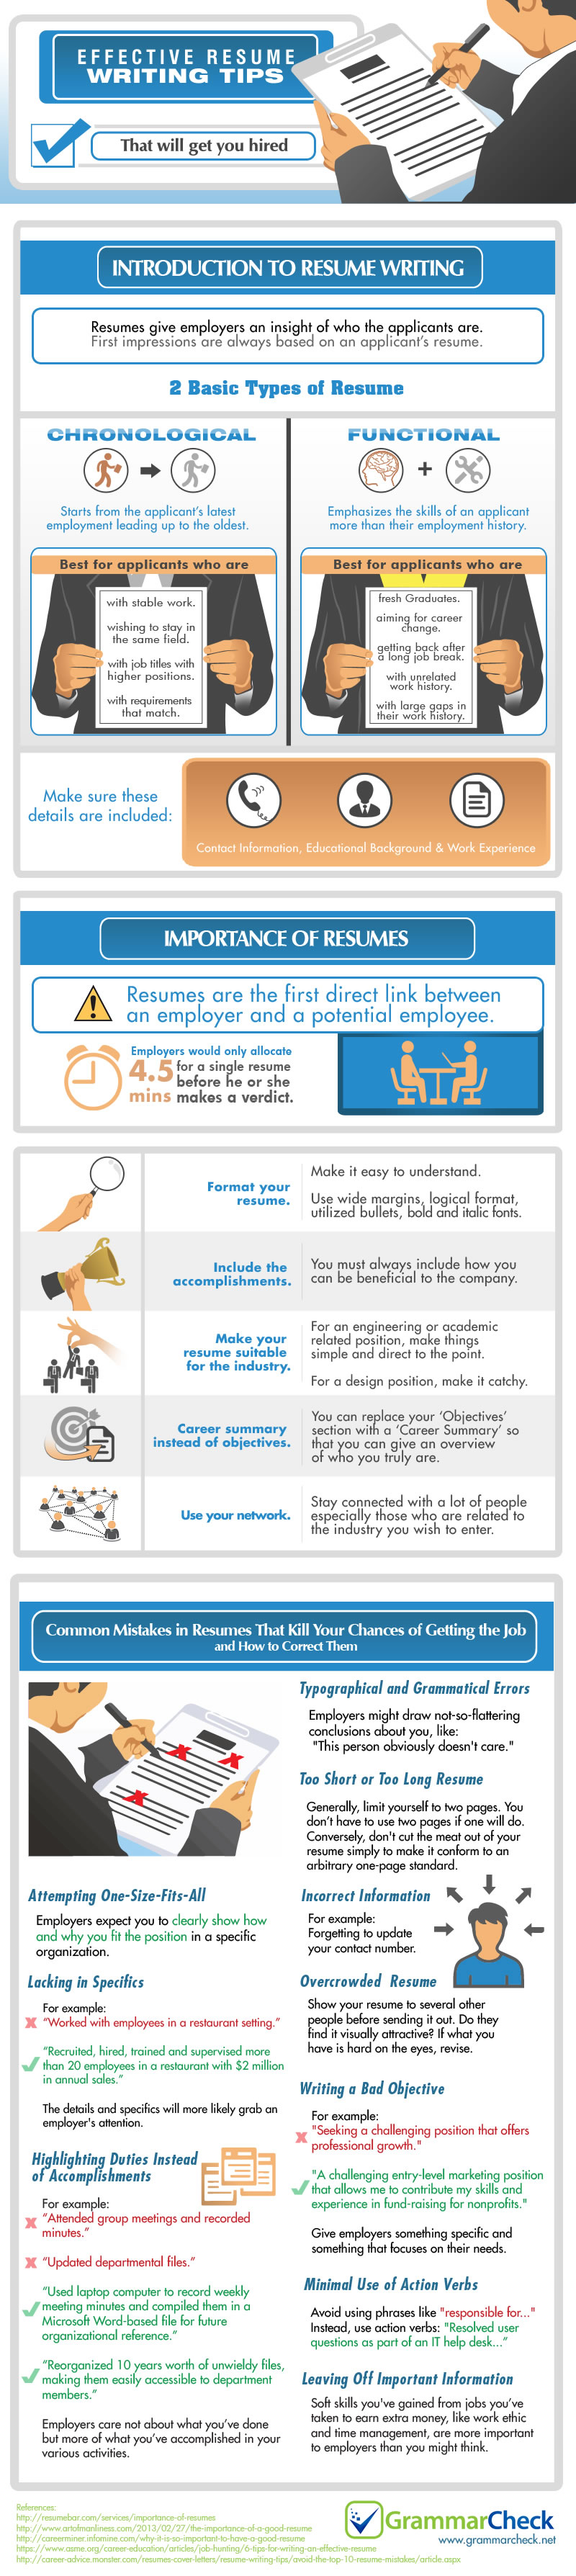 Effective Resume Writing Tips (Infographic)  Effective Resume